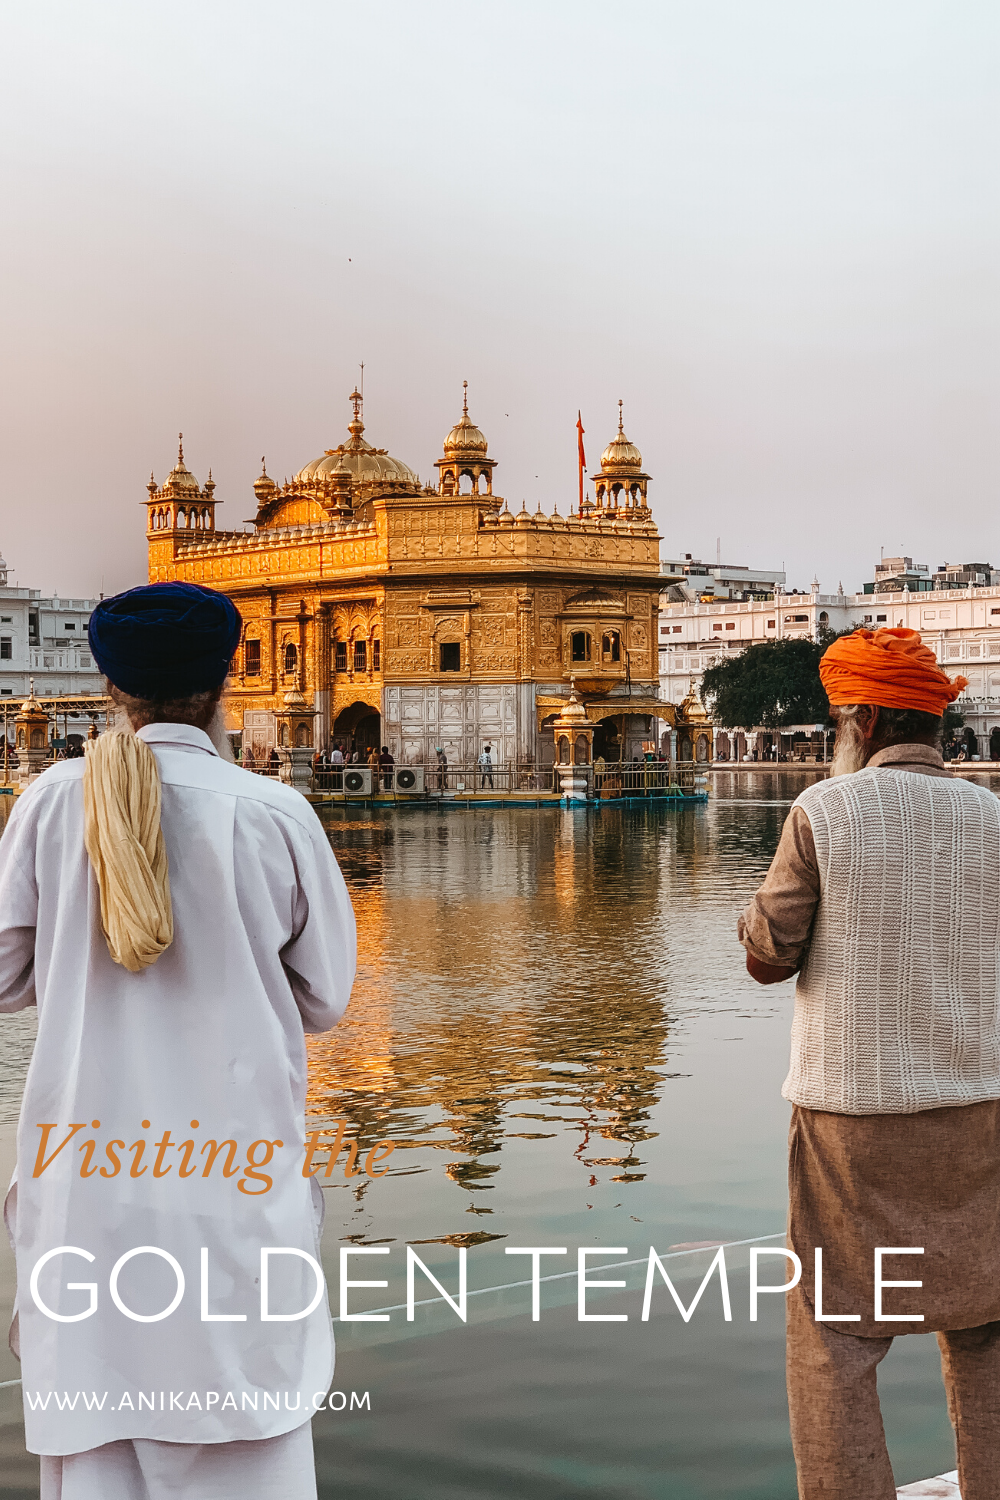 golden temple punjab, golden temple in india, amritsar, golden temple facts, golden temple history, golden temple timings, golden temple photos, golden temple rules, golden temple travel guide